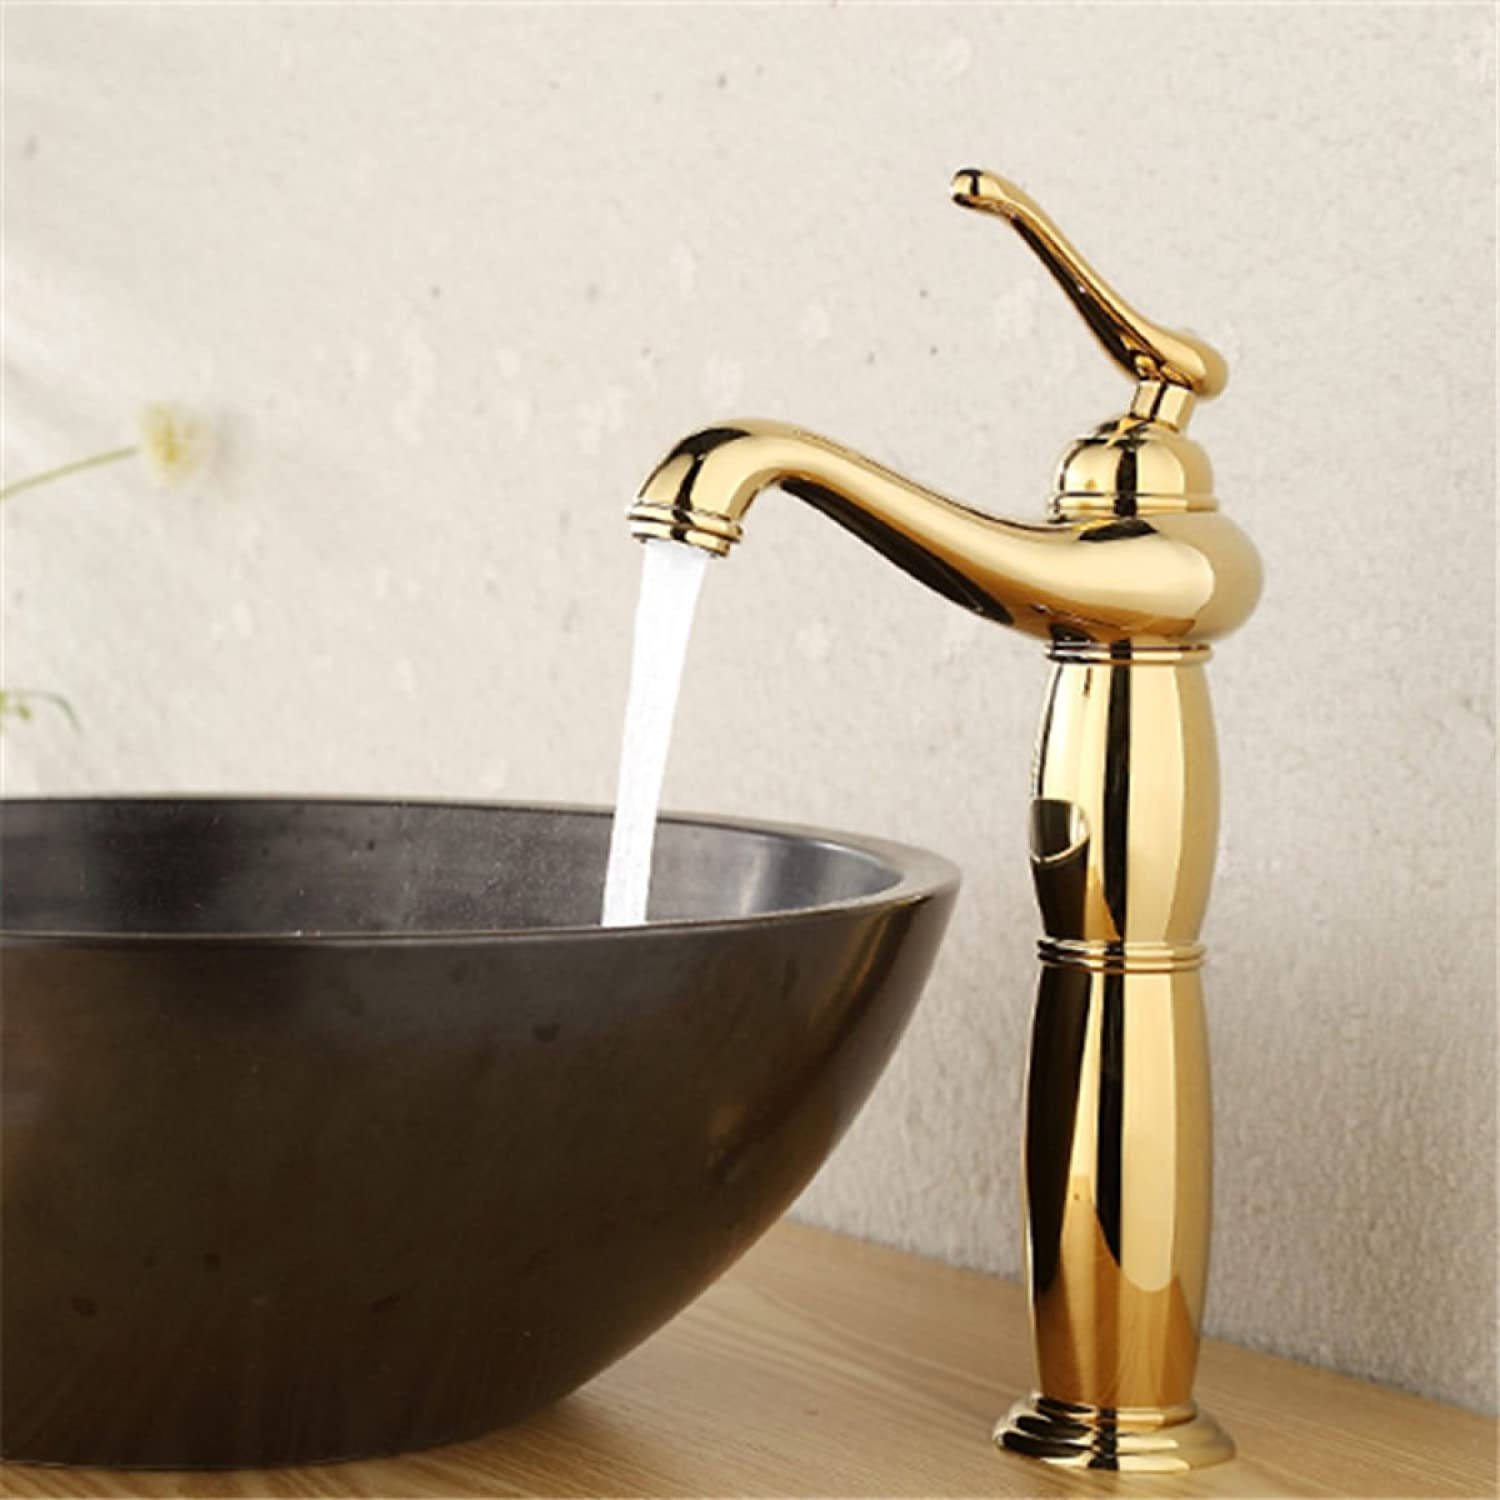 LDONGSH Copper Single Hole Hot And Cold Retro gold European Style American Style Satin Finish Wash Basin Faucet